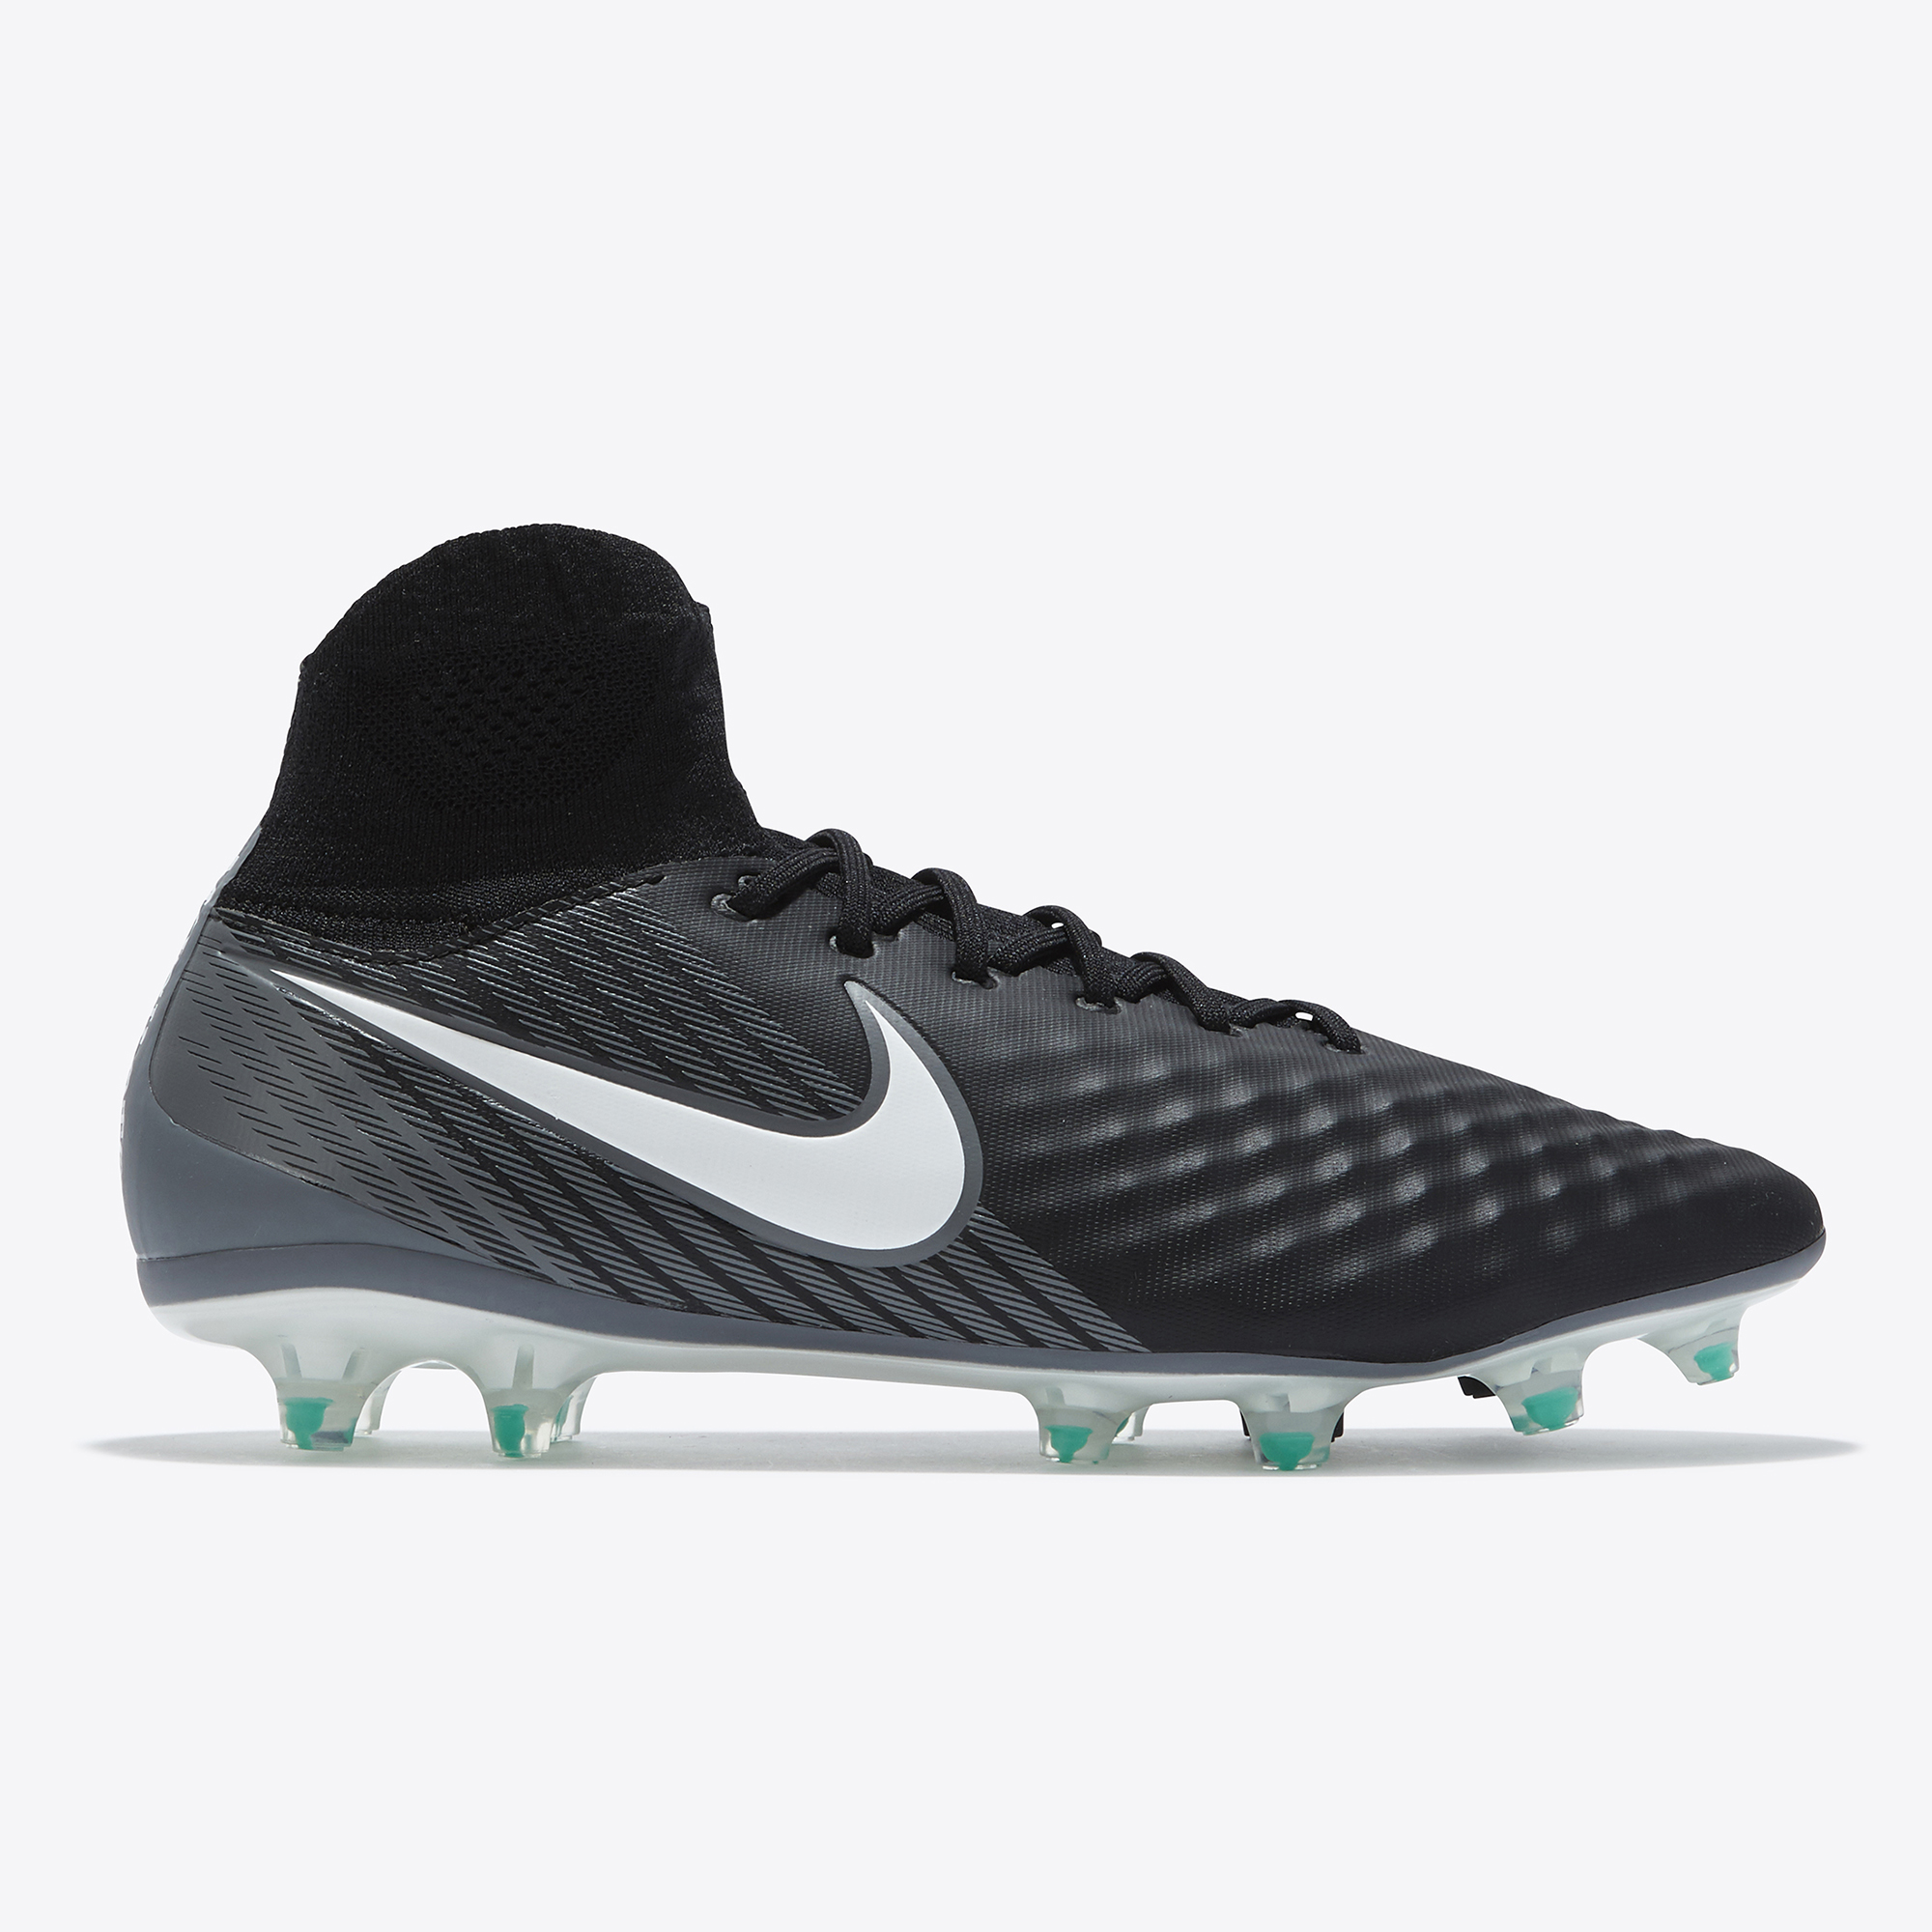 Nike Magista Orden II Firm Ground Football Boots - Black/White/Dark Gr